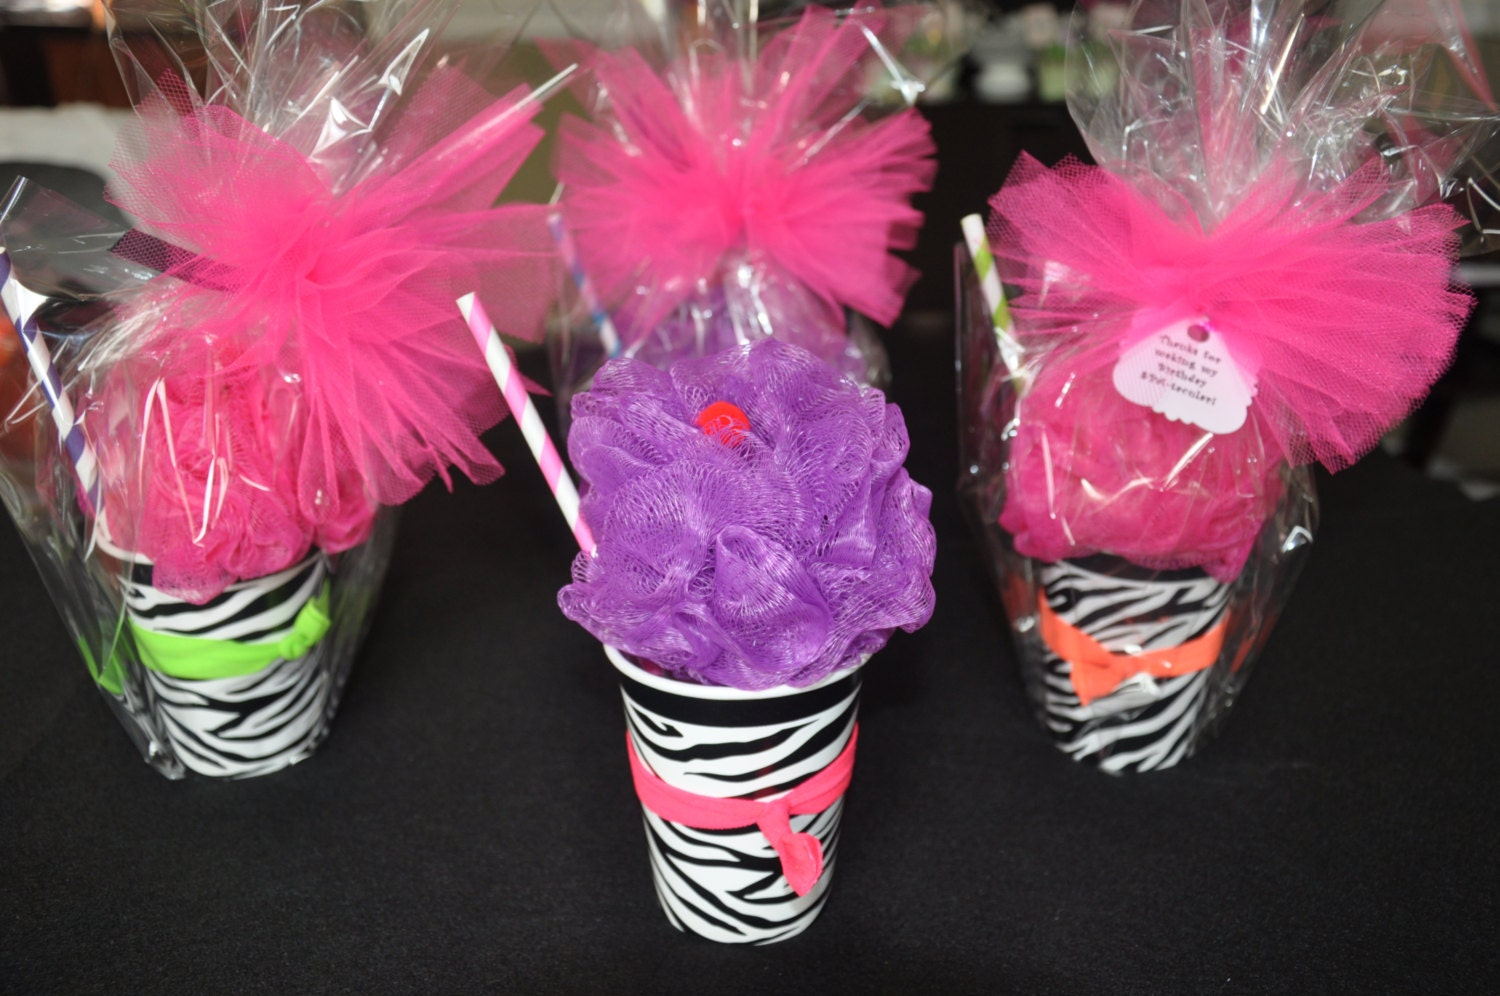 Girls Spa Party Favor Bath Puff Smoothie Filled With Nail